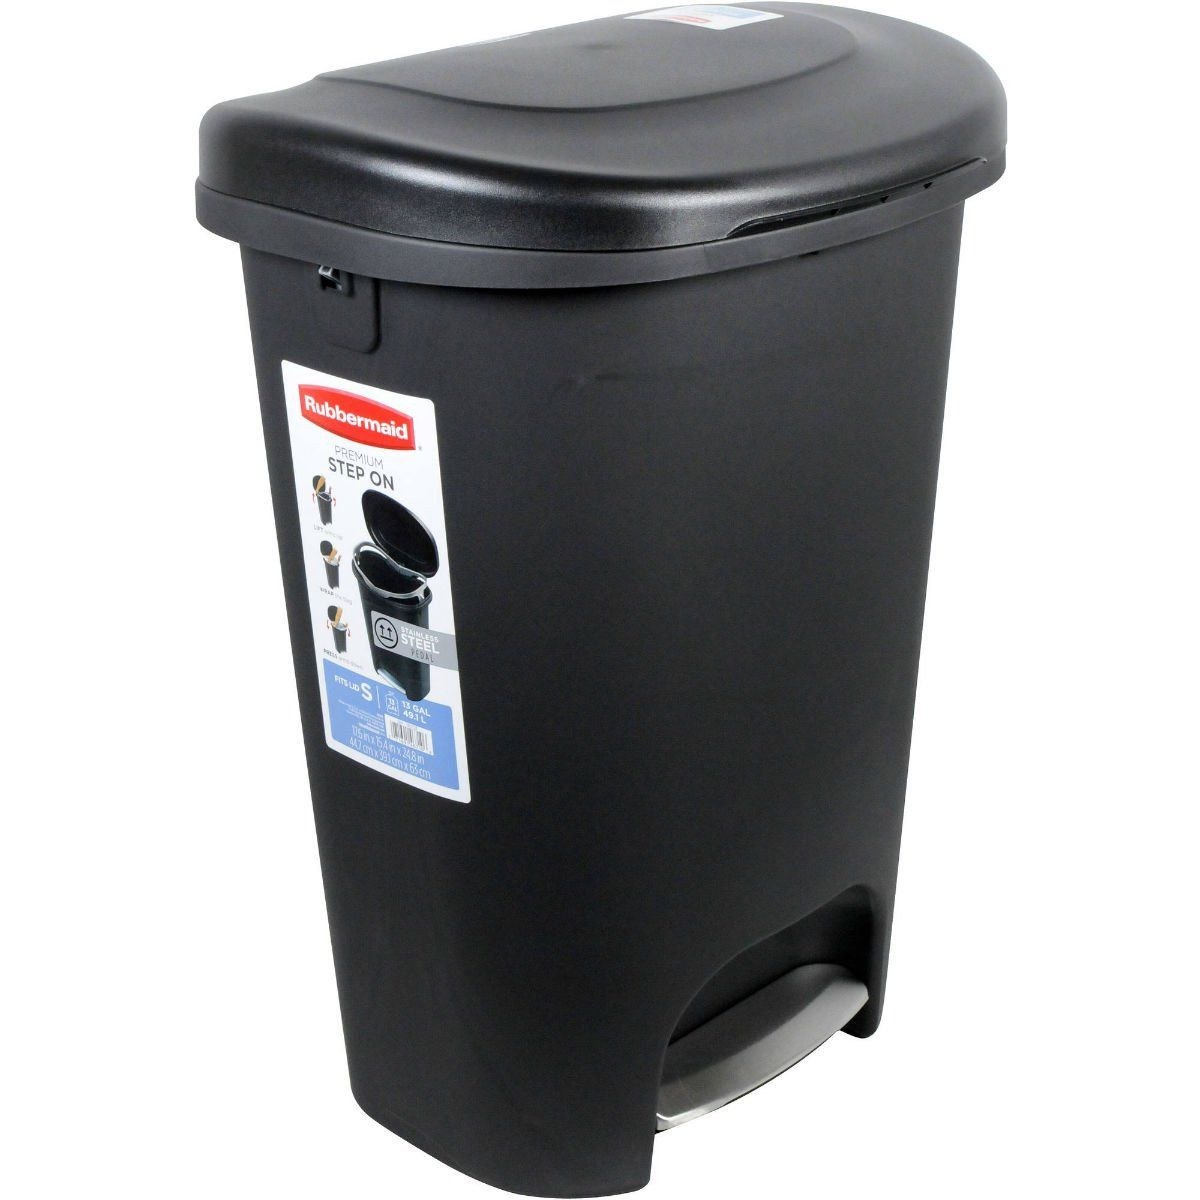 The Best Kitchen Trash Cans For Every Budget Kitchen Trash Cans Trash Can Rubbermaid